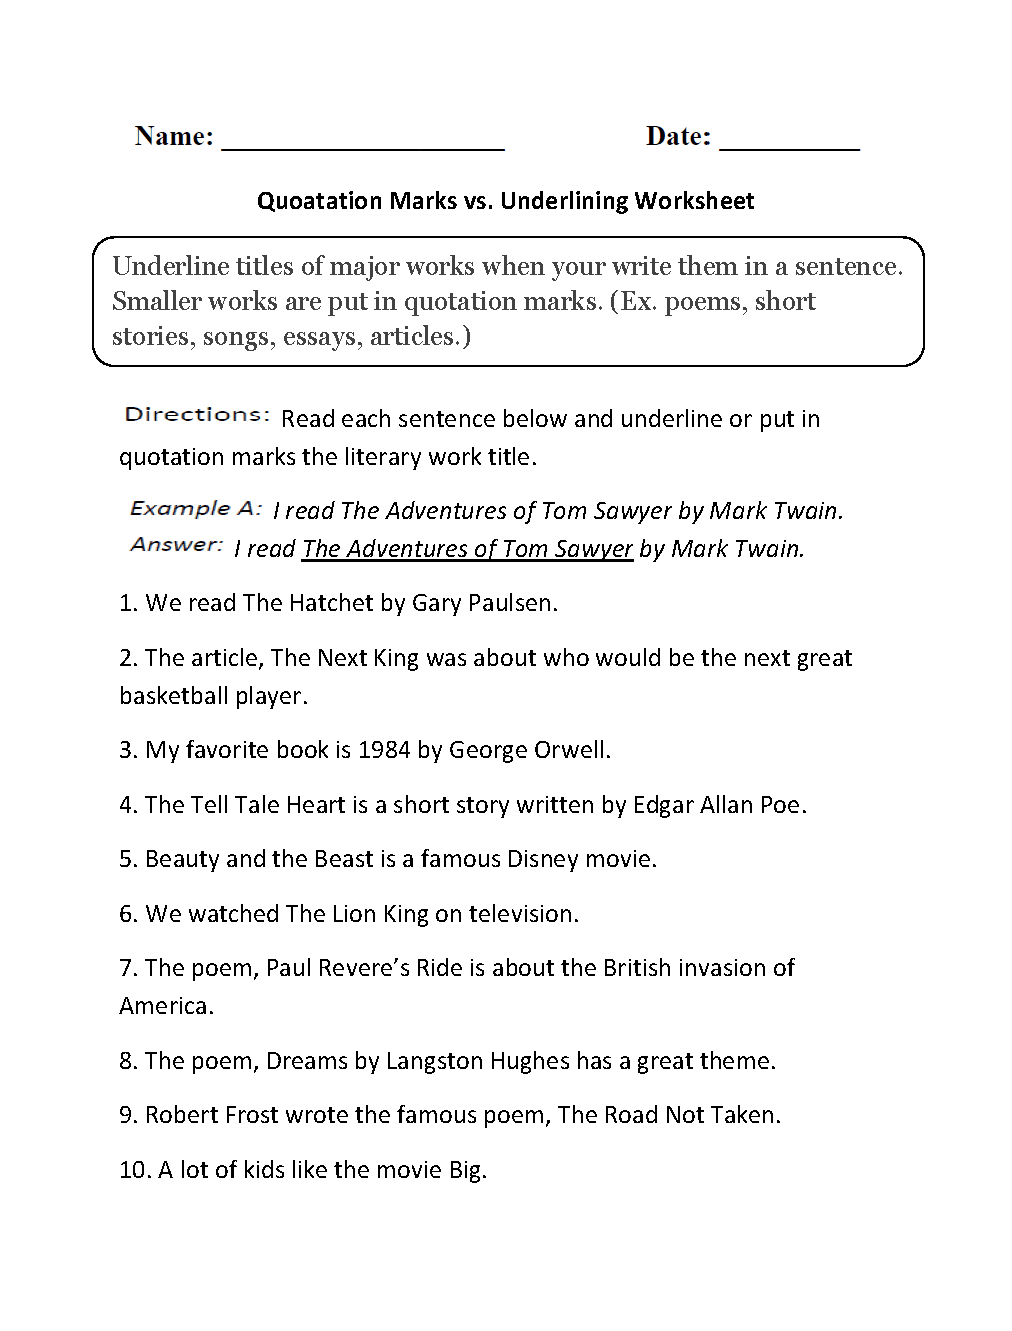 Quotation Marks vs Underlining Worksheets | things to try | Essay ...